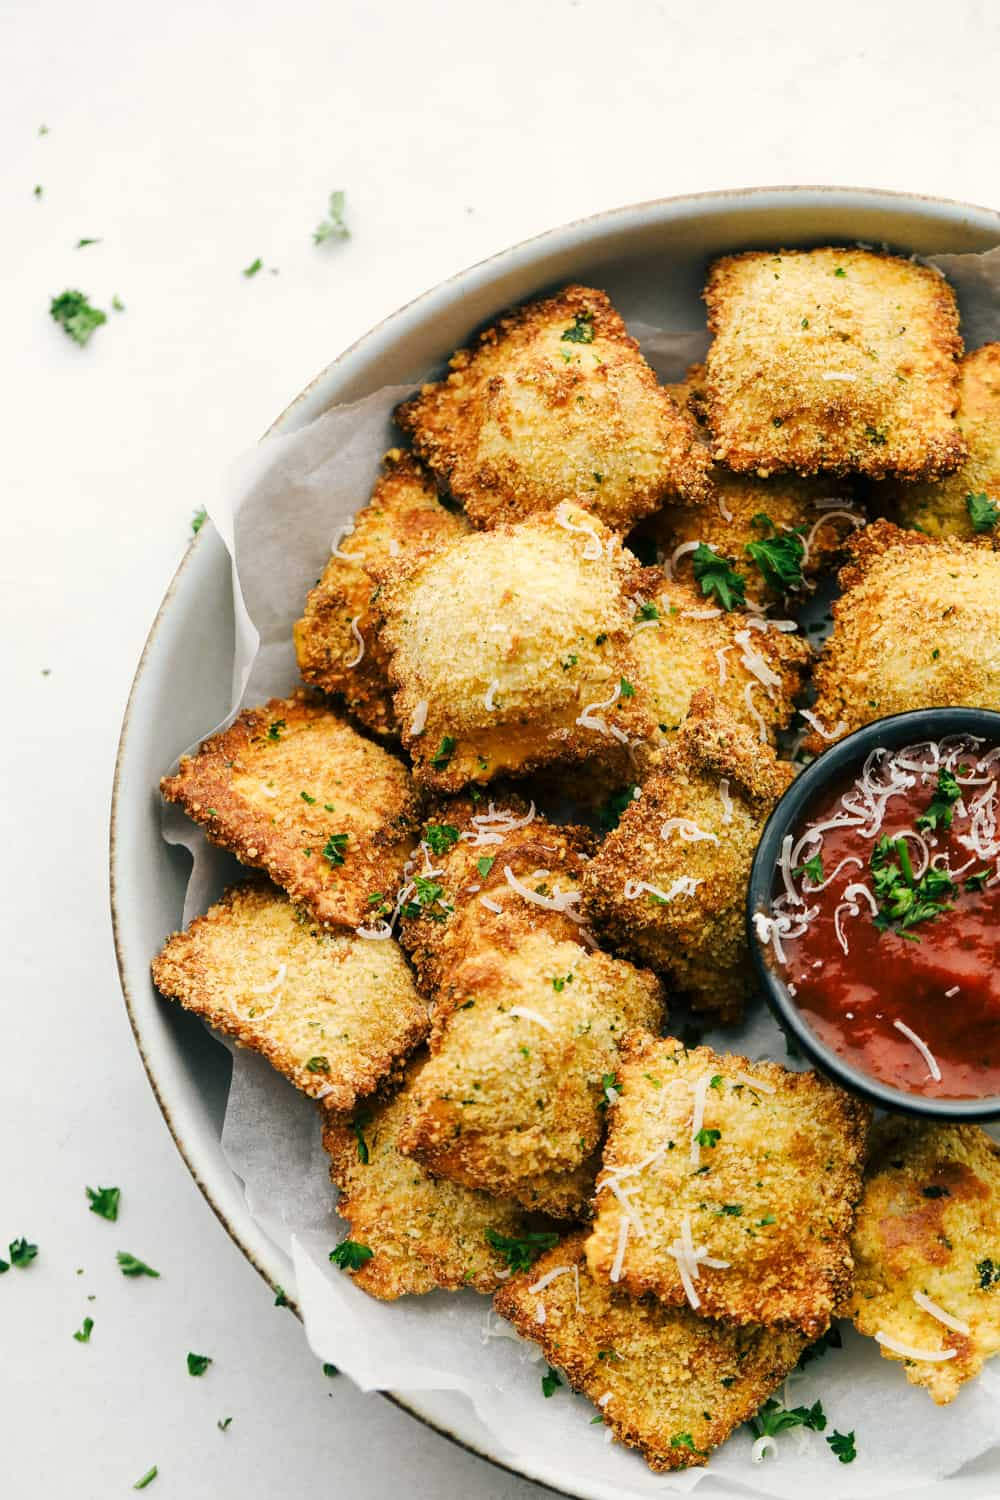 Toasted air fryer ravioli in a bowl with marinara.